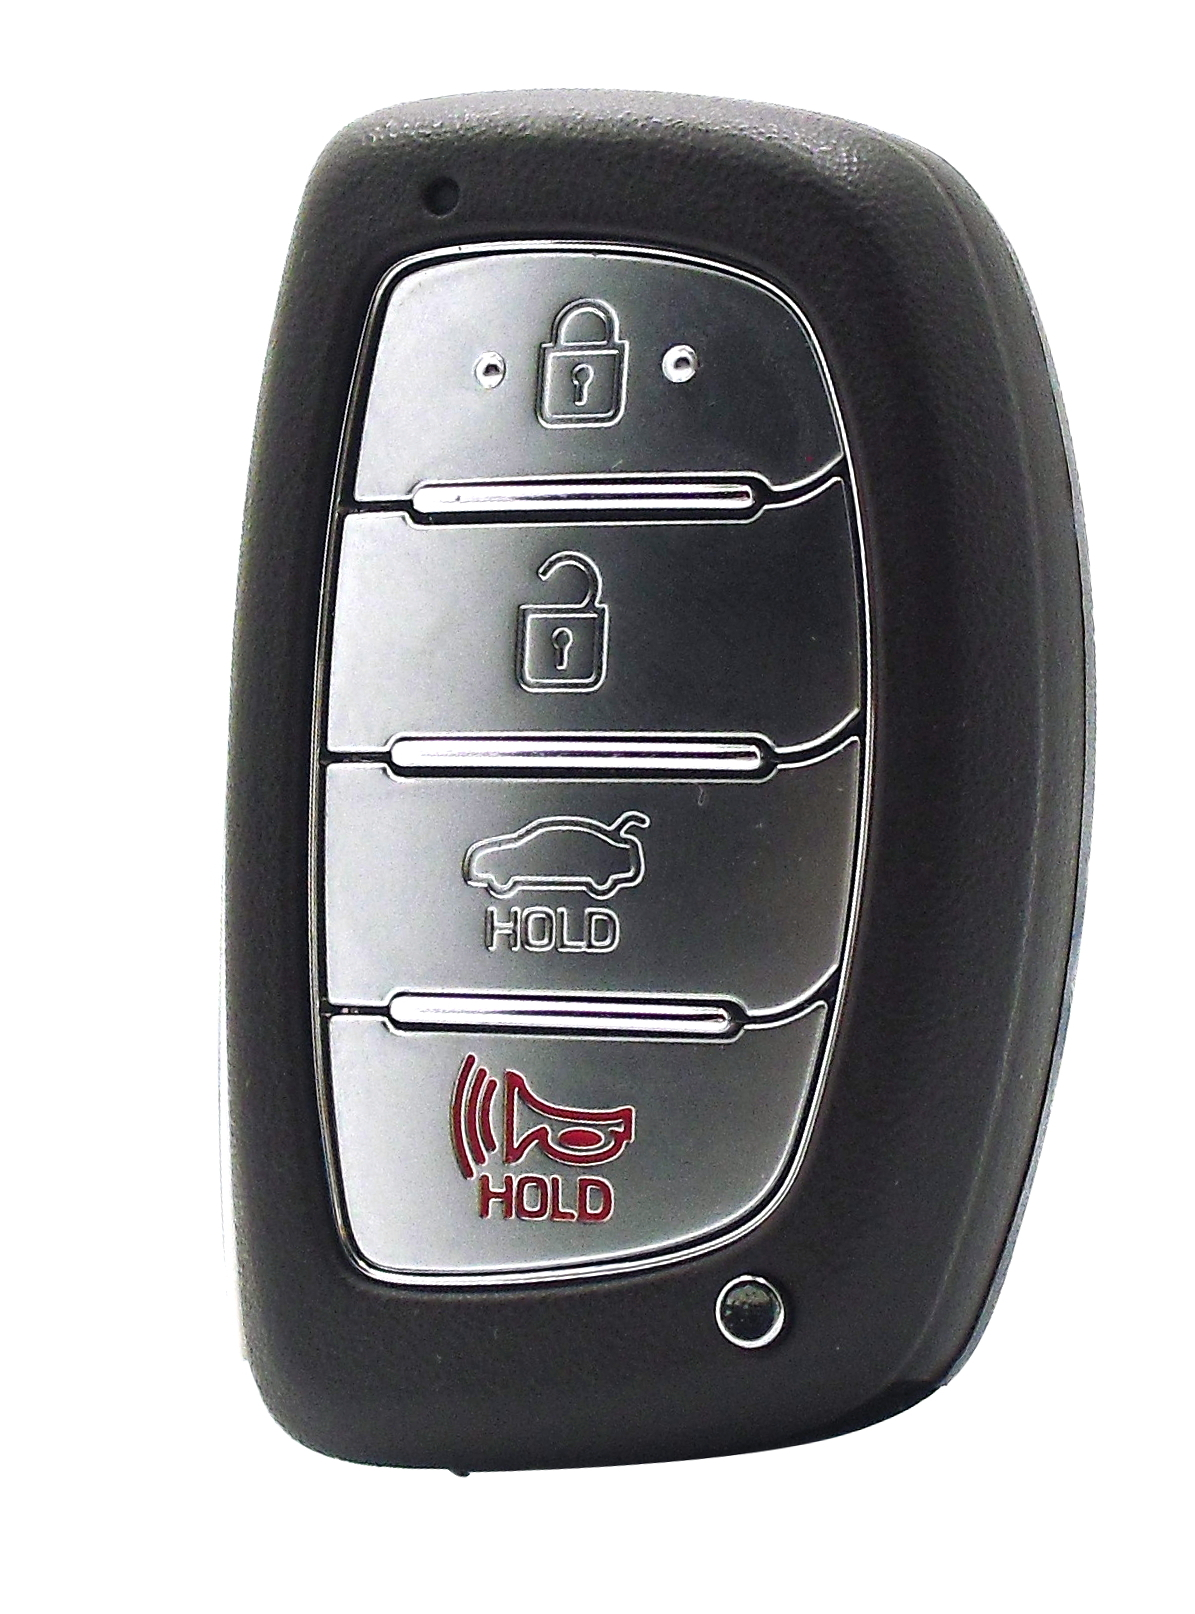 Smart Car Key Replacement >> Replacement Car Keys and Remotes for 2017 Hyundai Sonata